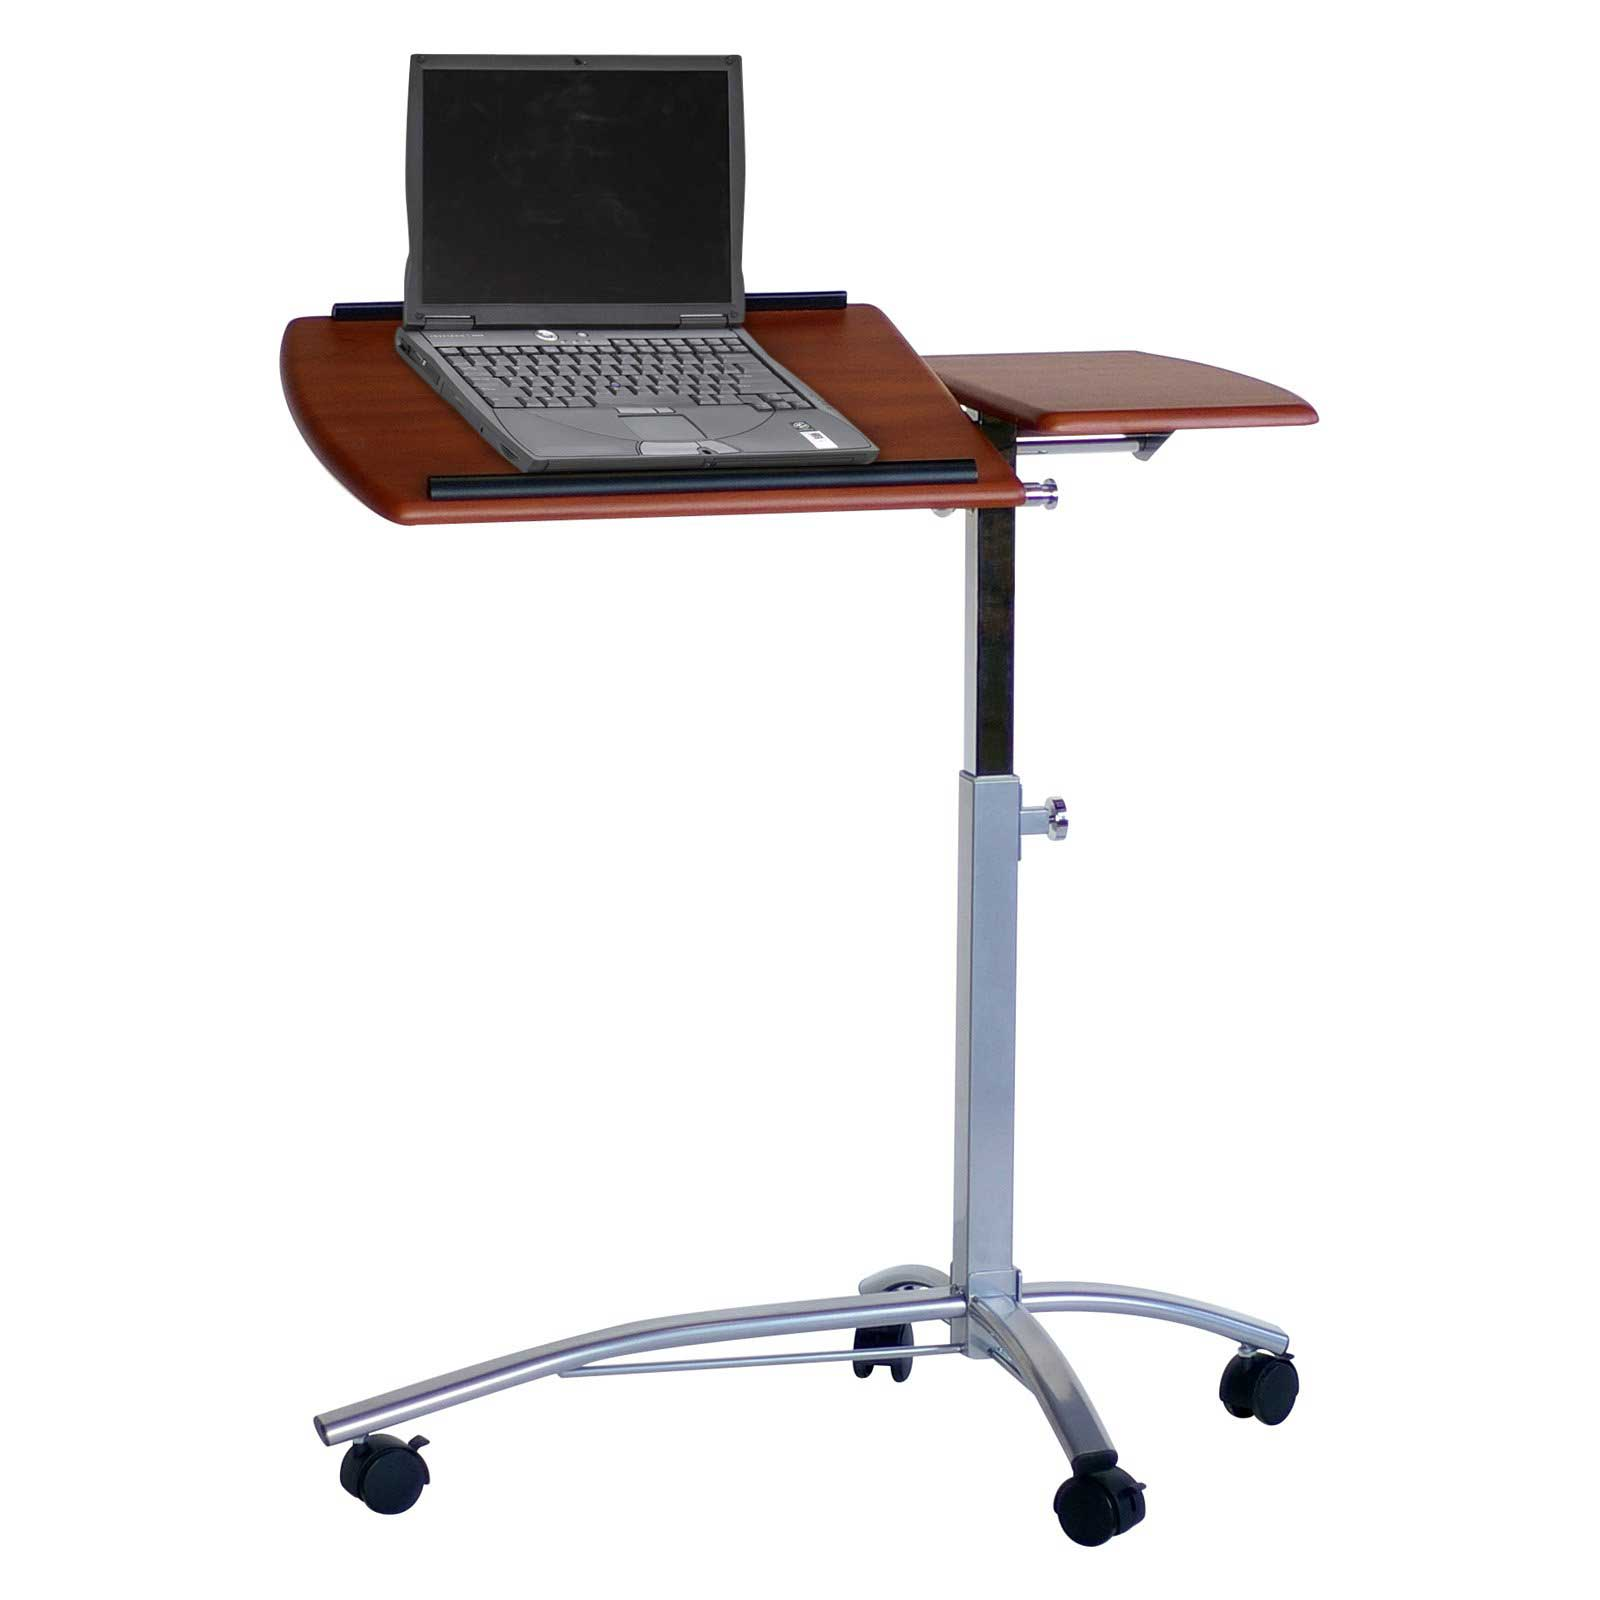 Eastwind wood and metal laptop reading desk